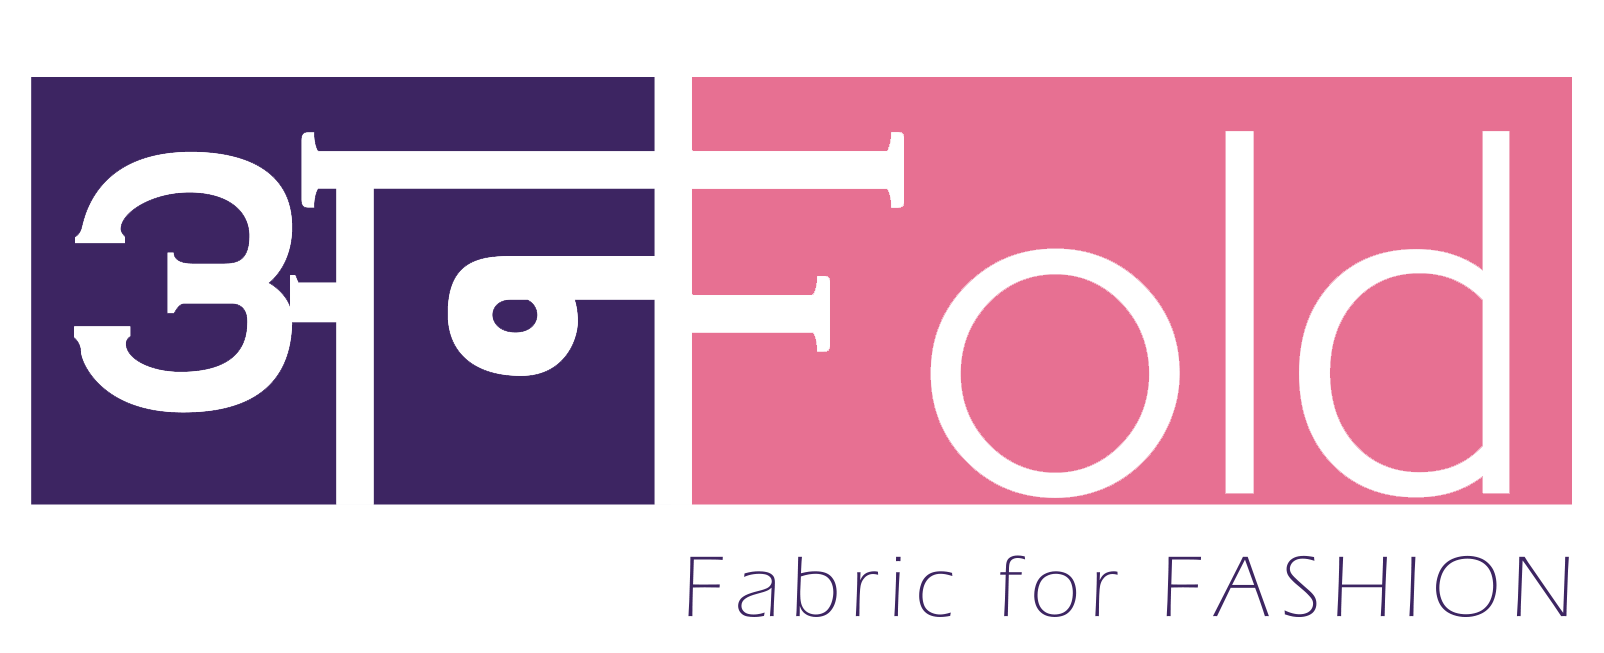 Unffold - Fabric for Fashion